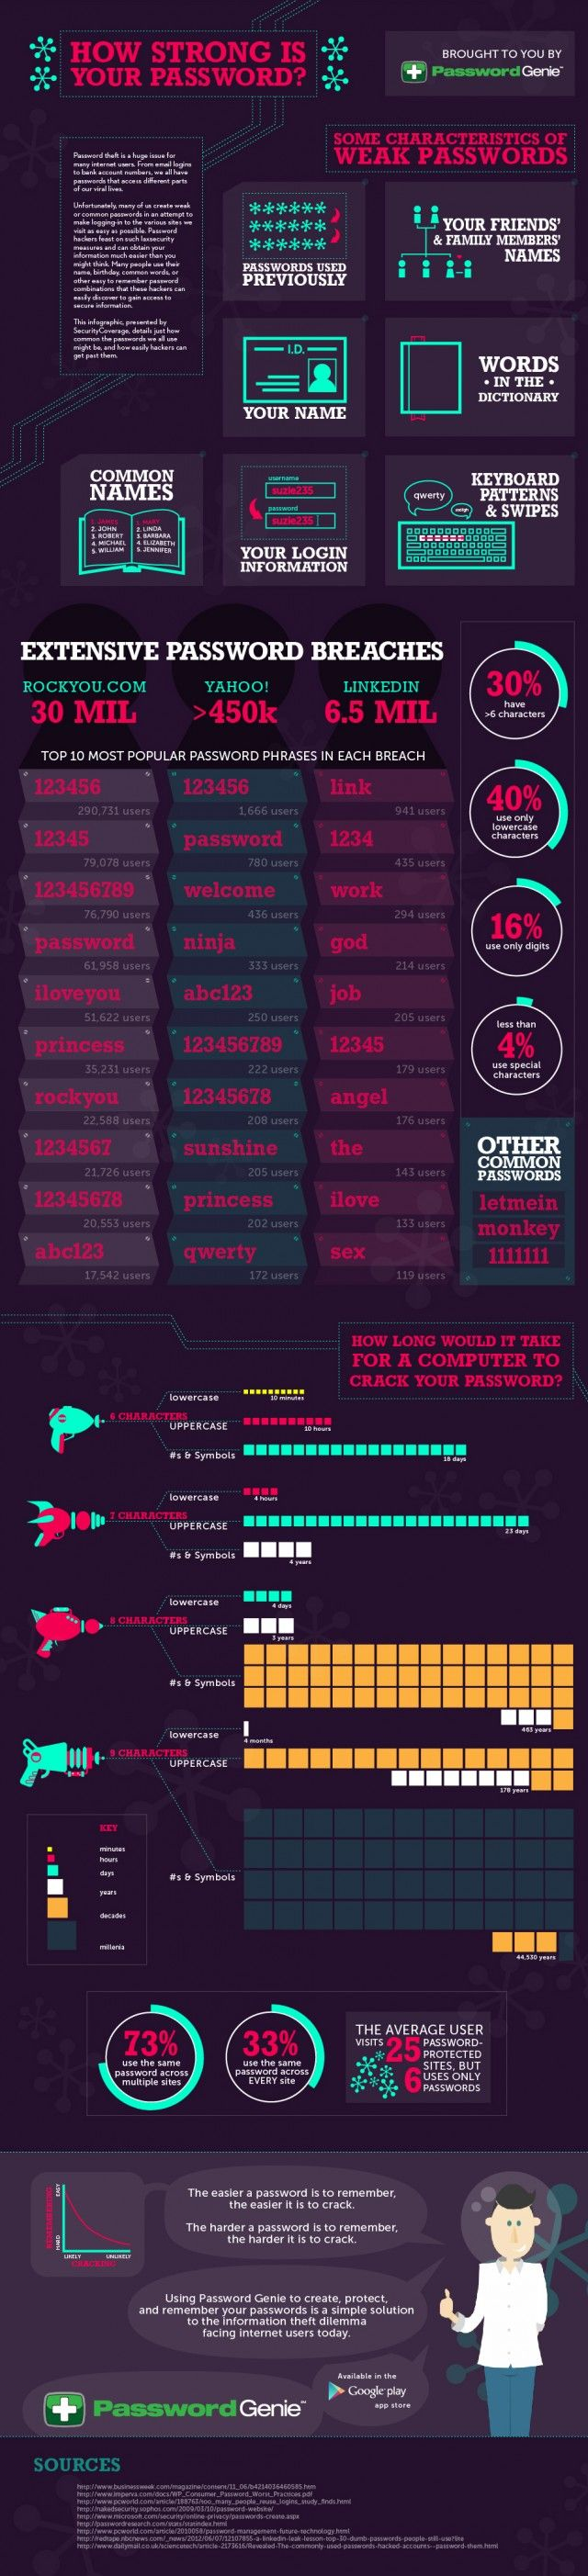 Daily Infographic | How Strong is Your Password? [Infographic] - sophiealice.goossens@gmail.com - Gmail